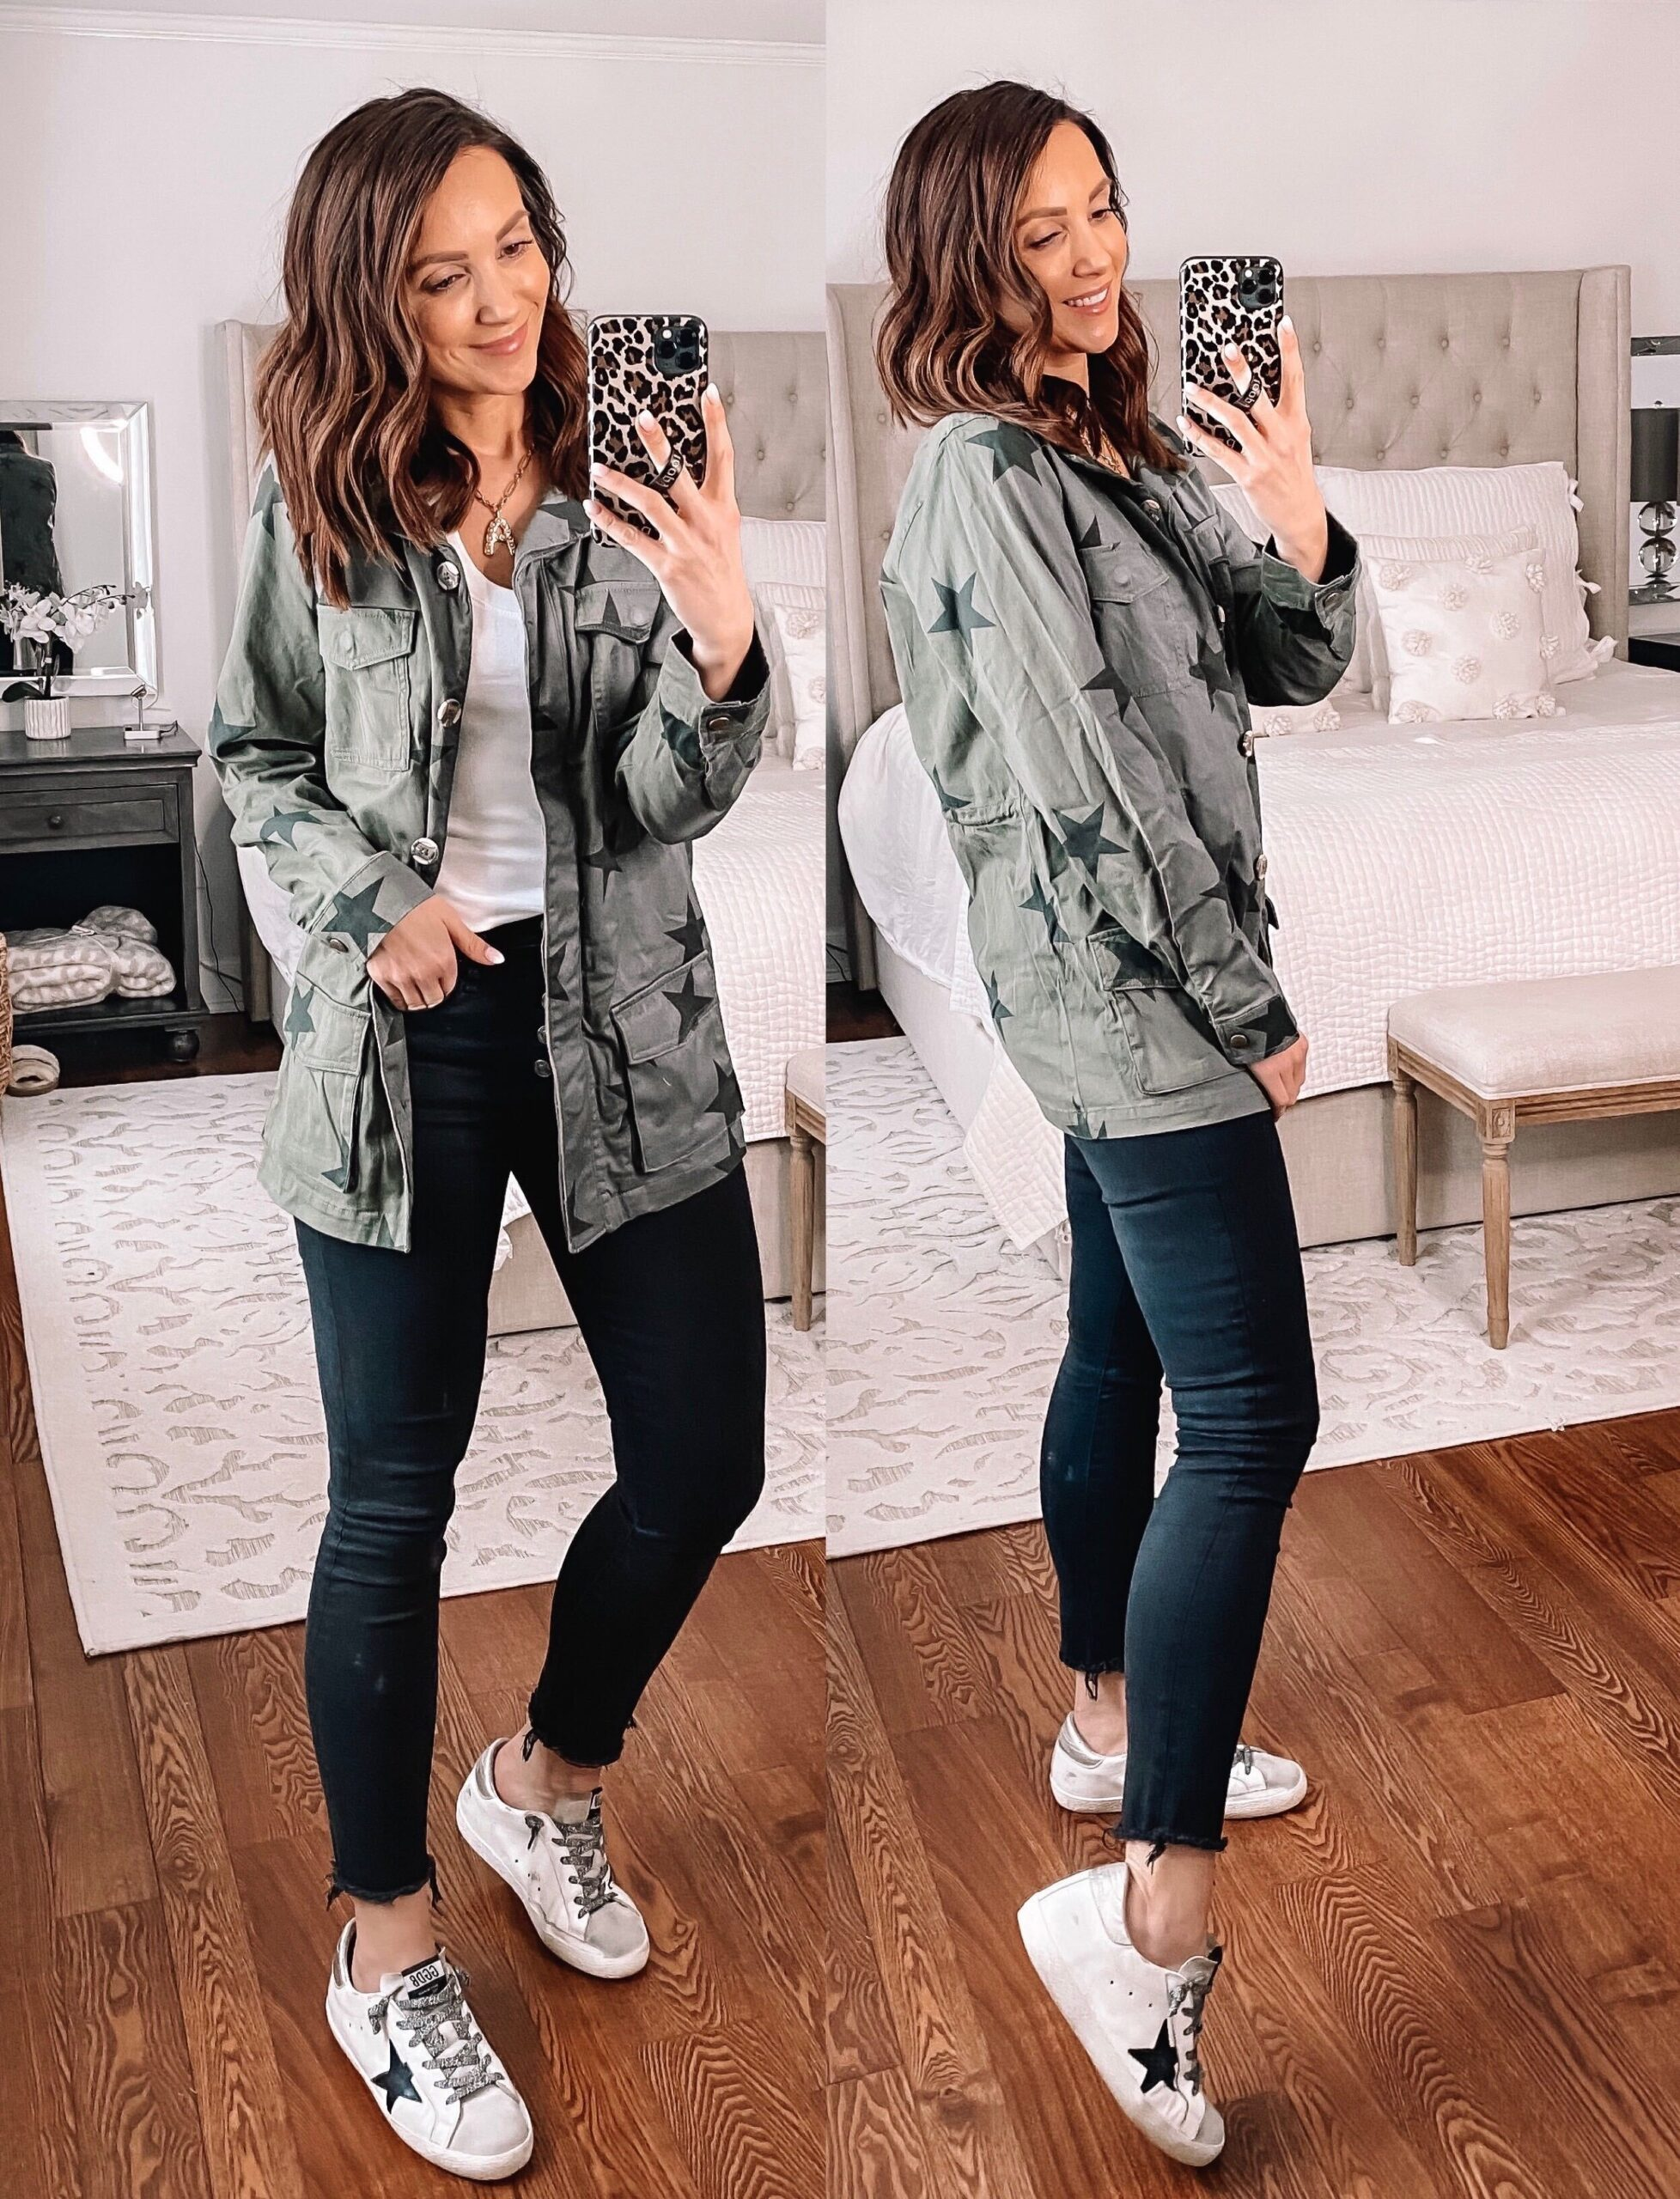 target style, target finds, casual outfit